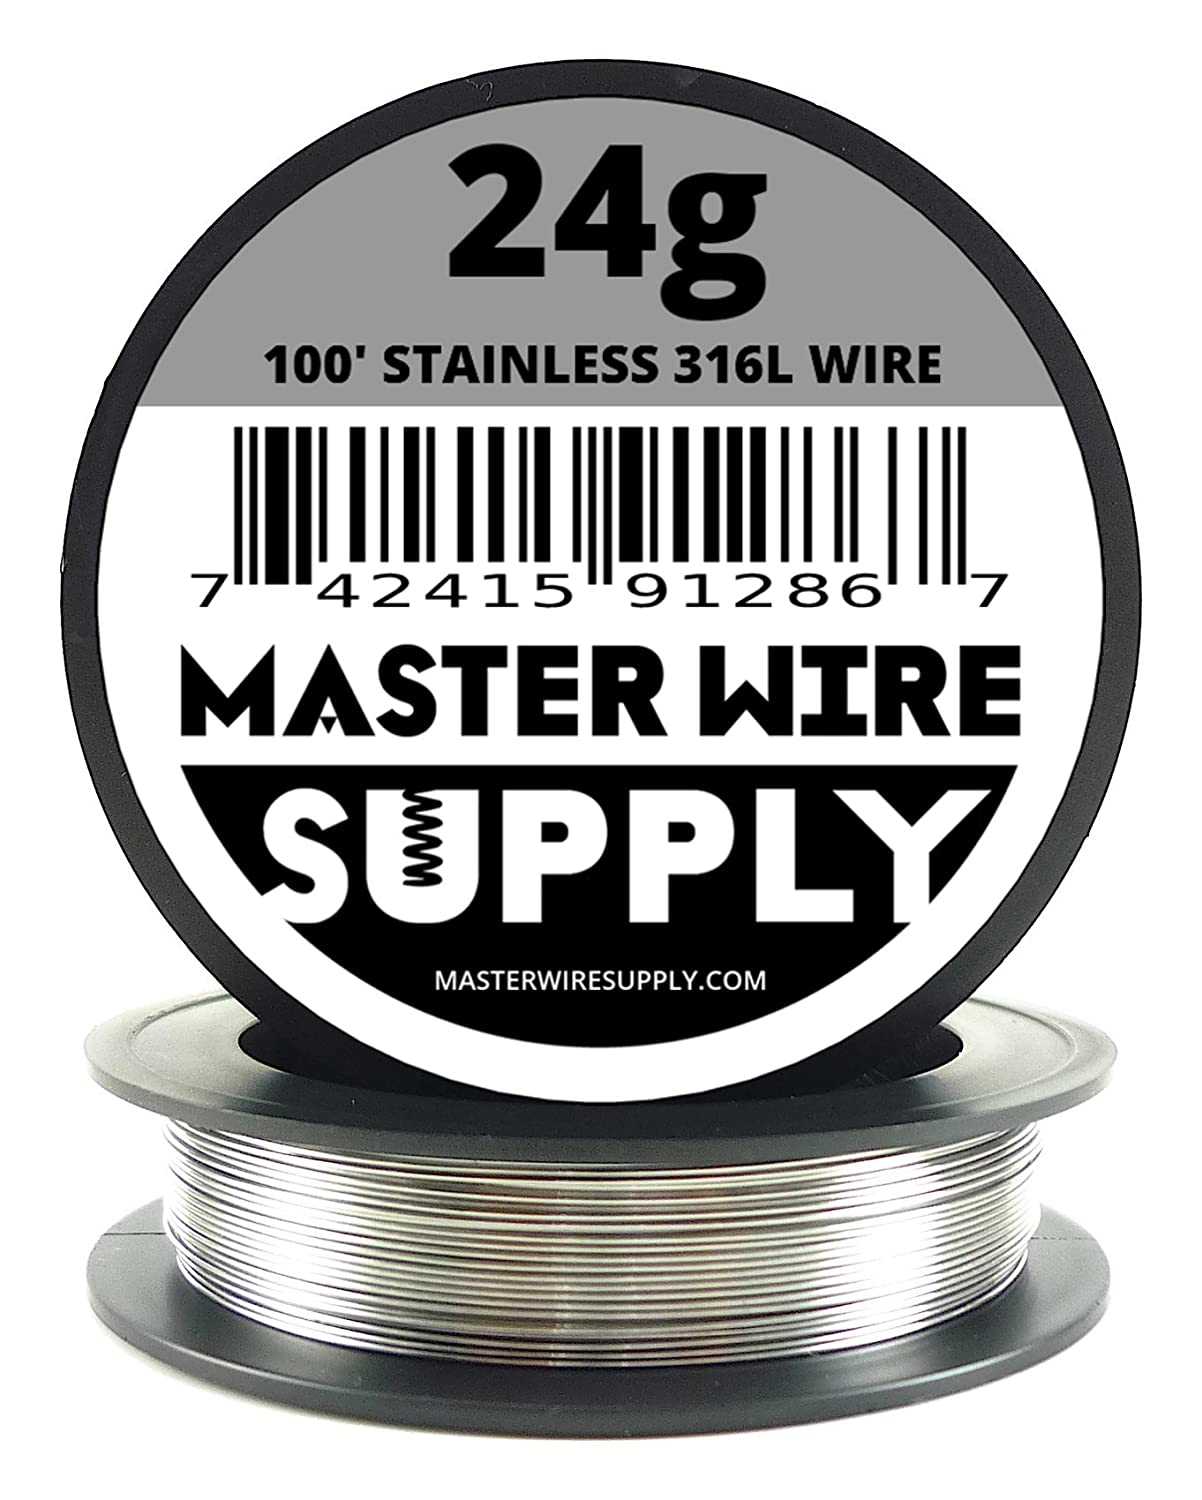 Stainless Steel 316L - 100' - 24 Gauge Wire Master Wire Supply 4336834432